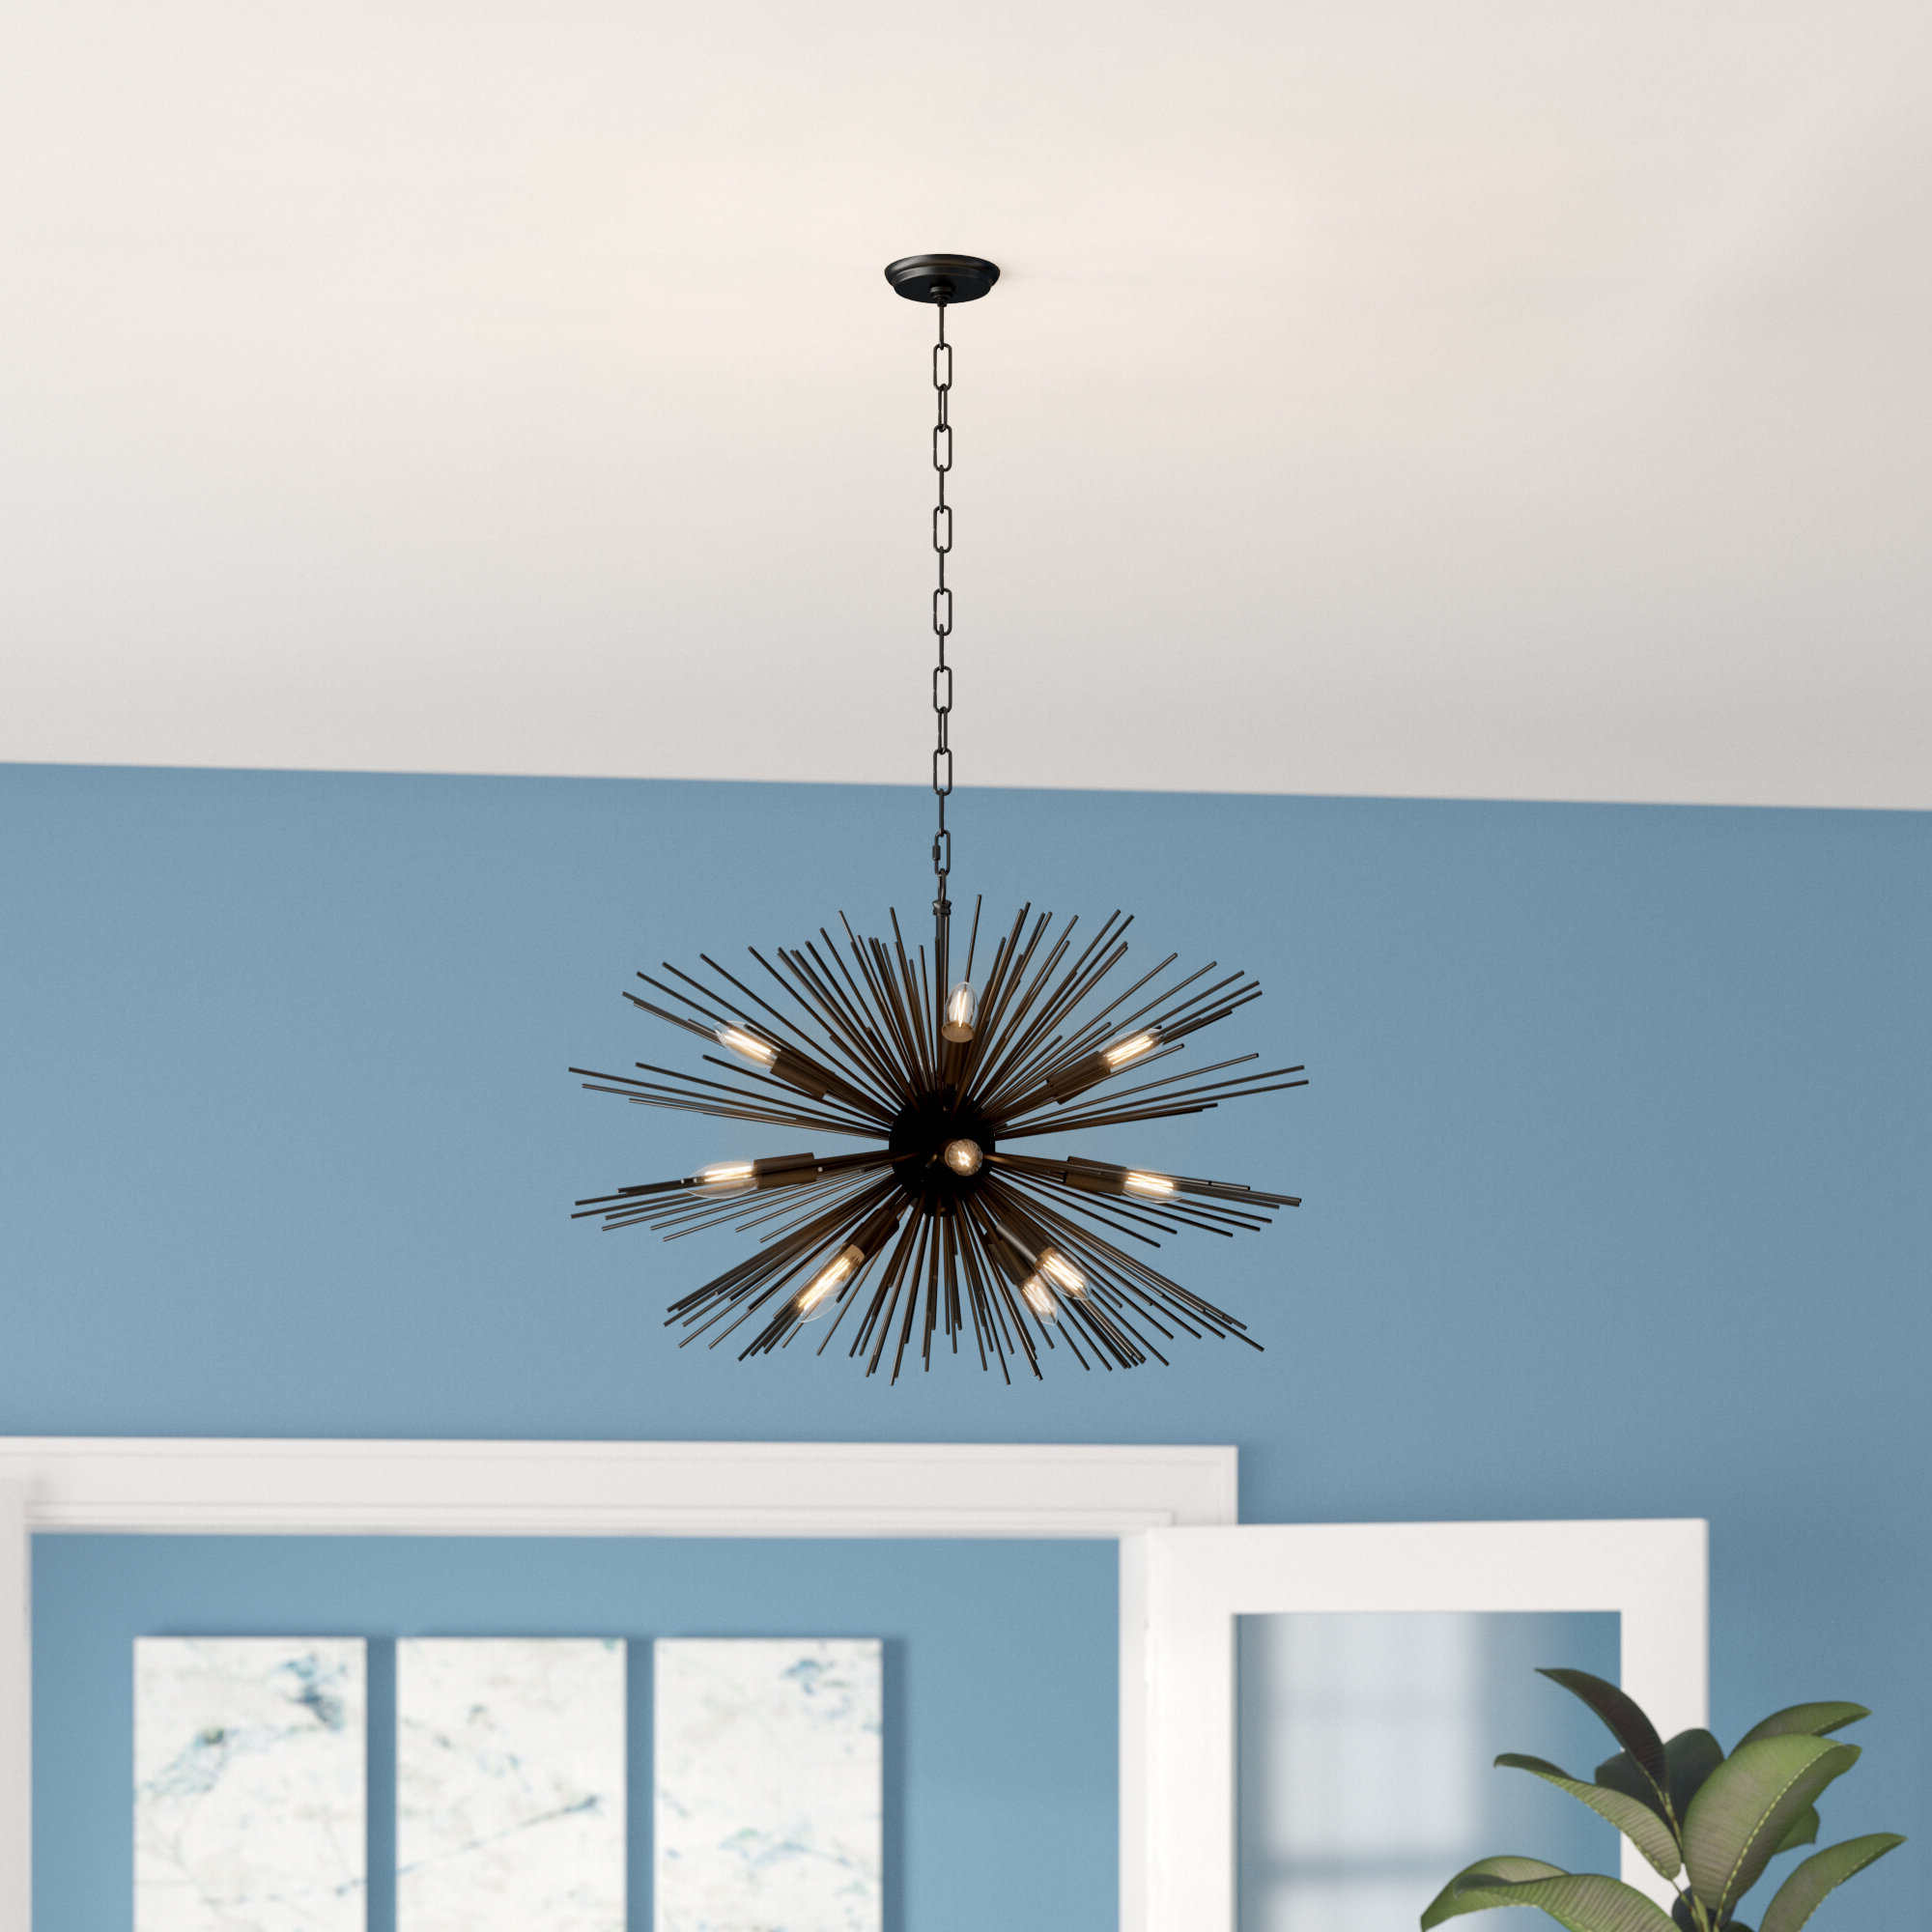 Nelly 12 Light Sputnik Chandeliers Intended For Best And Newest Modern Rustic Interiors Nelly 12 Light Sputnik Chandelier (View 8 of 20)